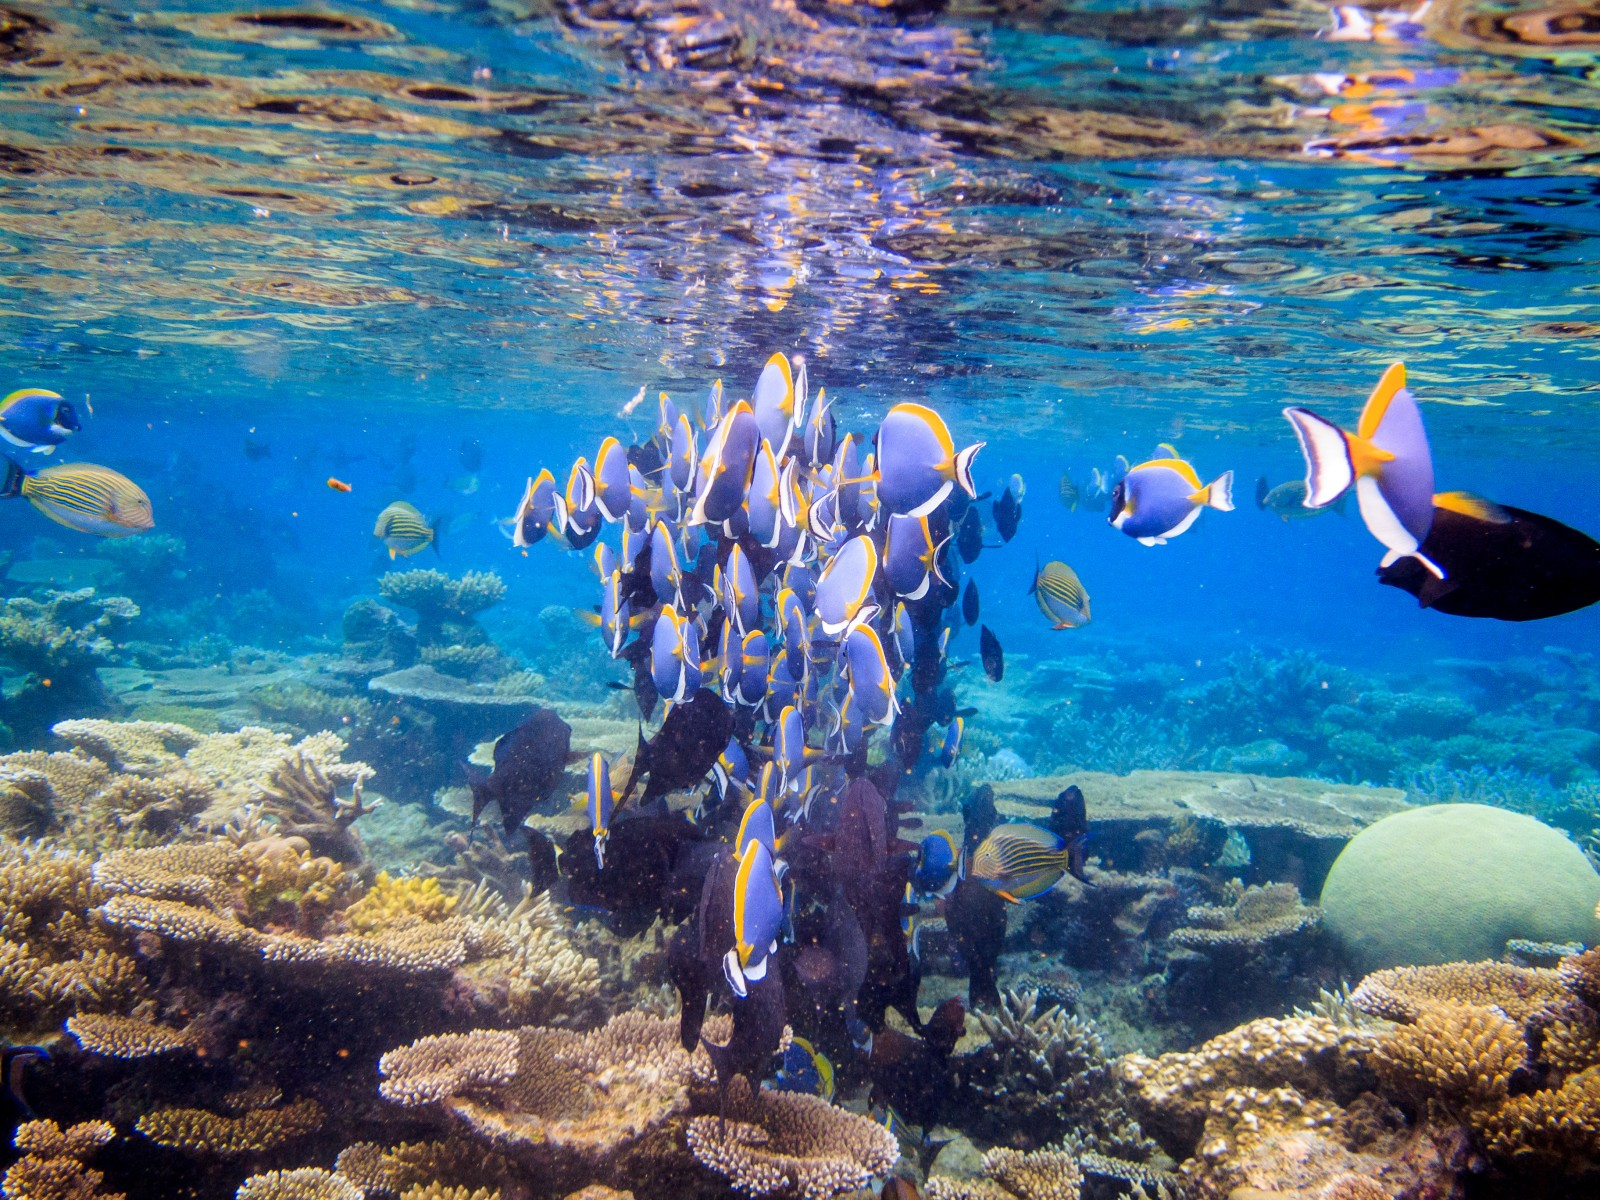 sea_fish_water_swimming_island_underwater_snorkeling_reef-763281